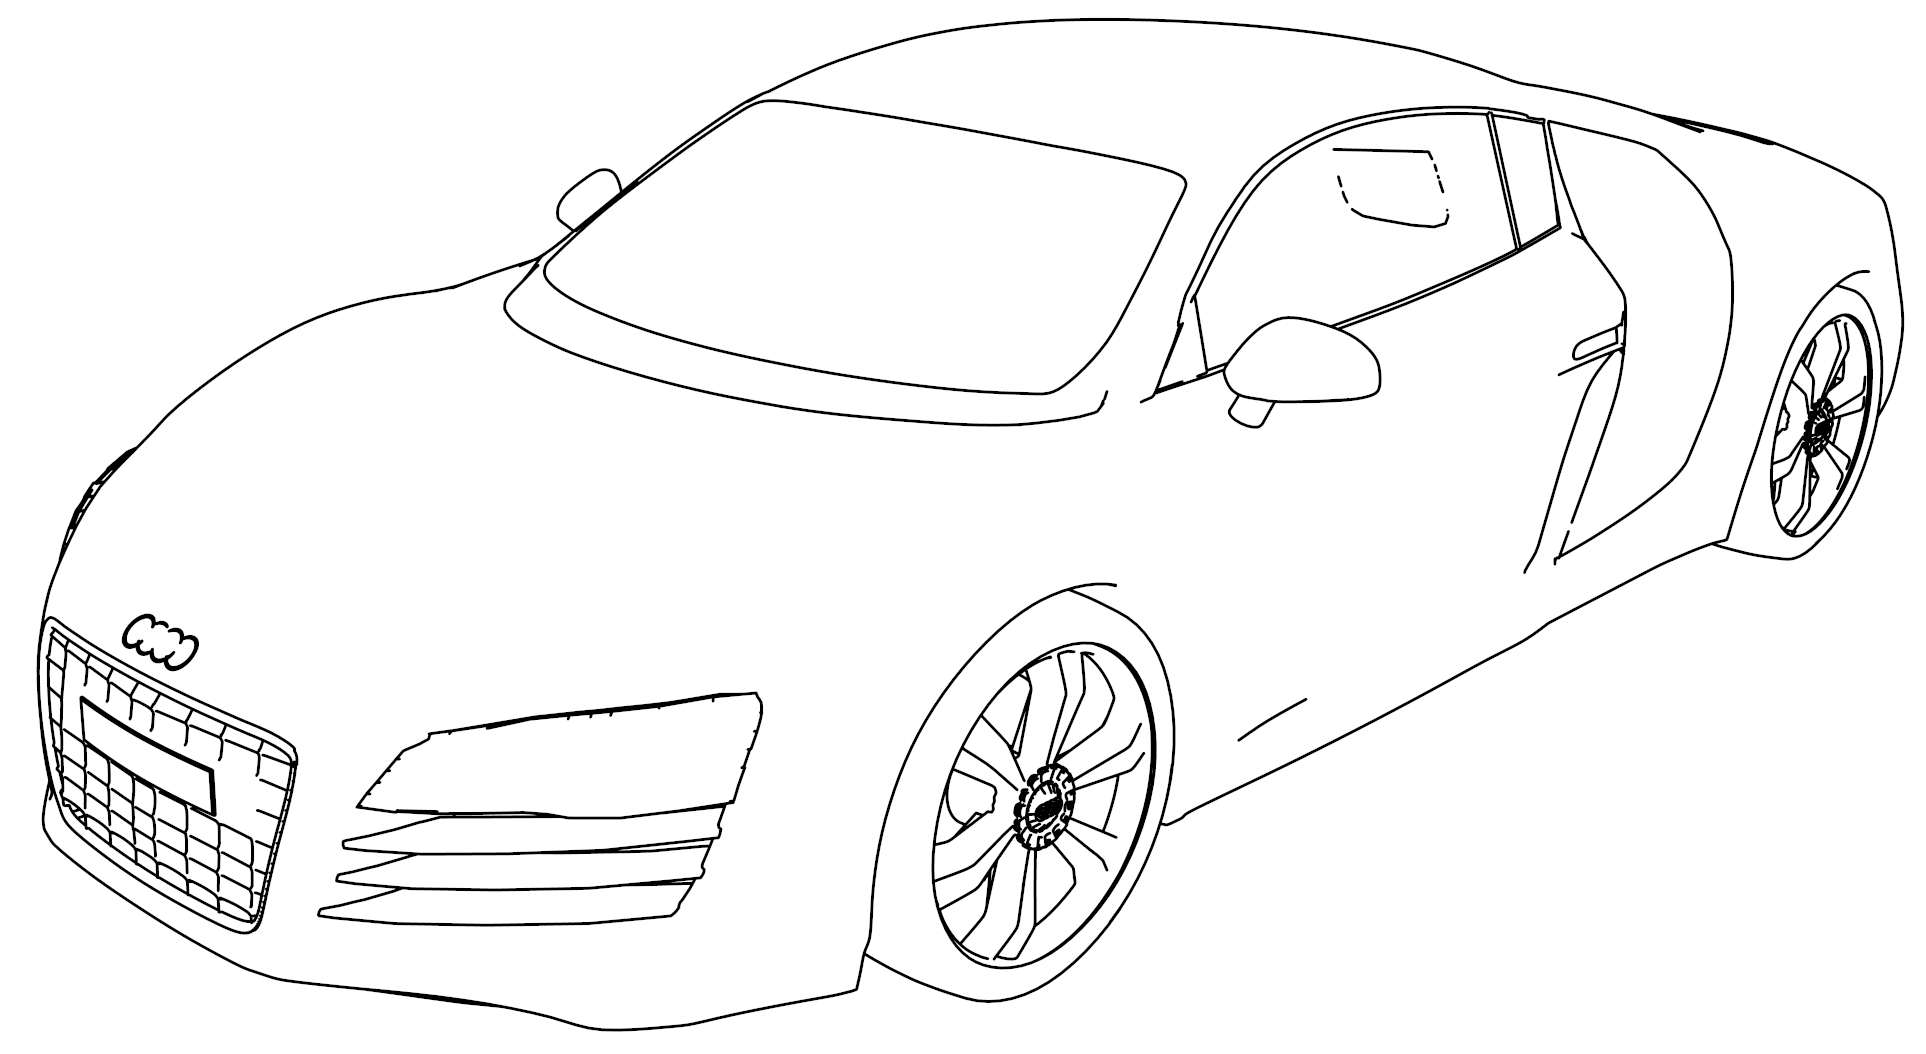 Audi R8 Coloring Page Perspective